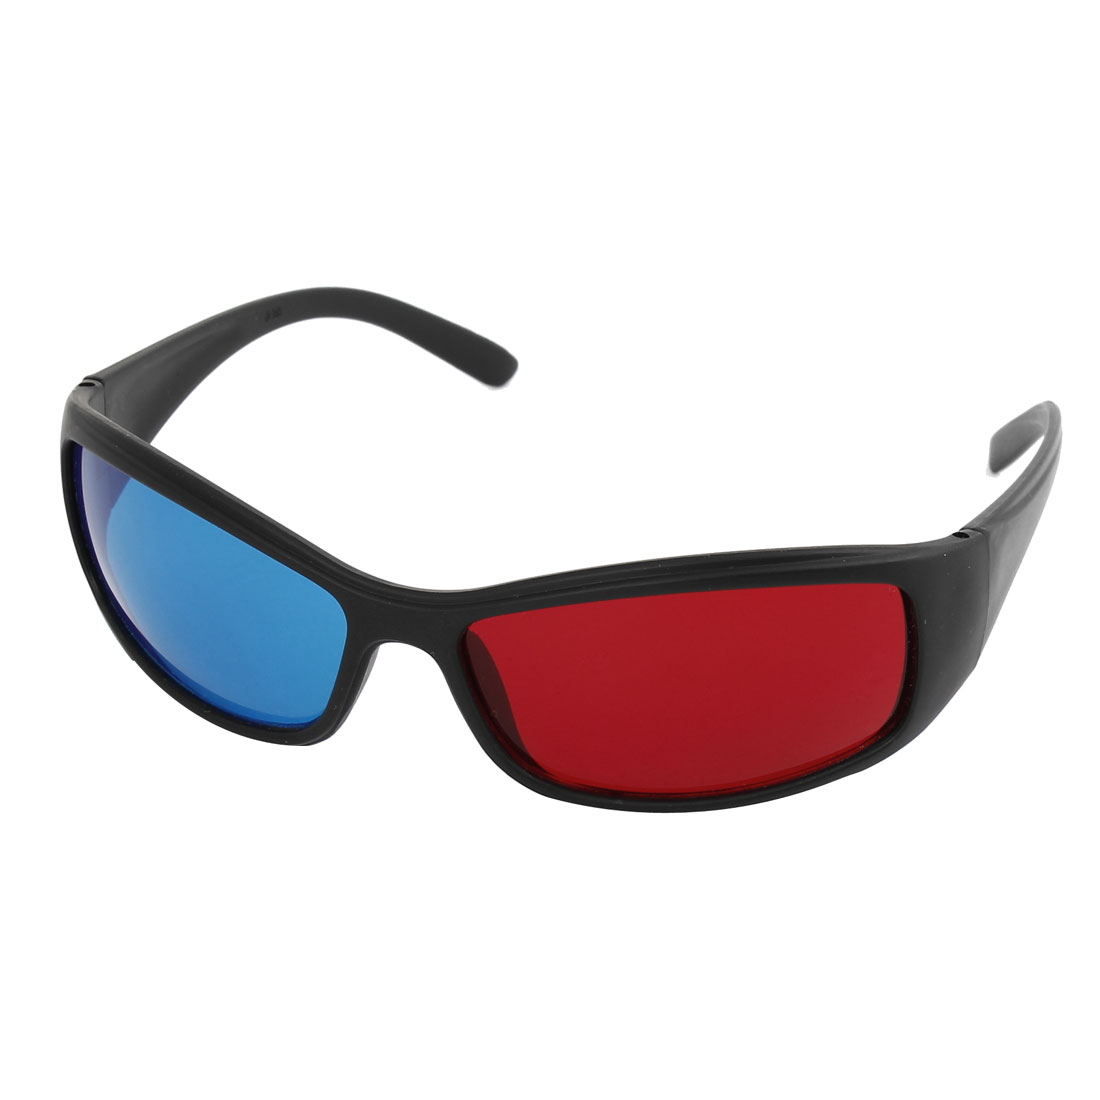 Moive Games Single Bridge Red Blue Lens Black Frame 3D-Glasses